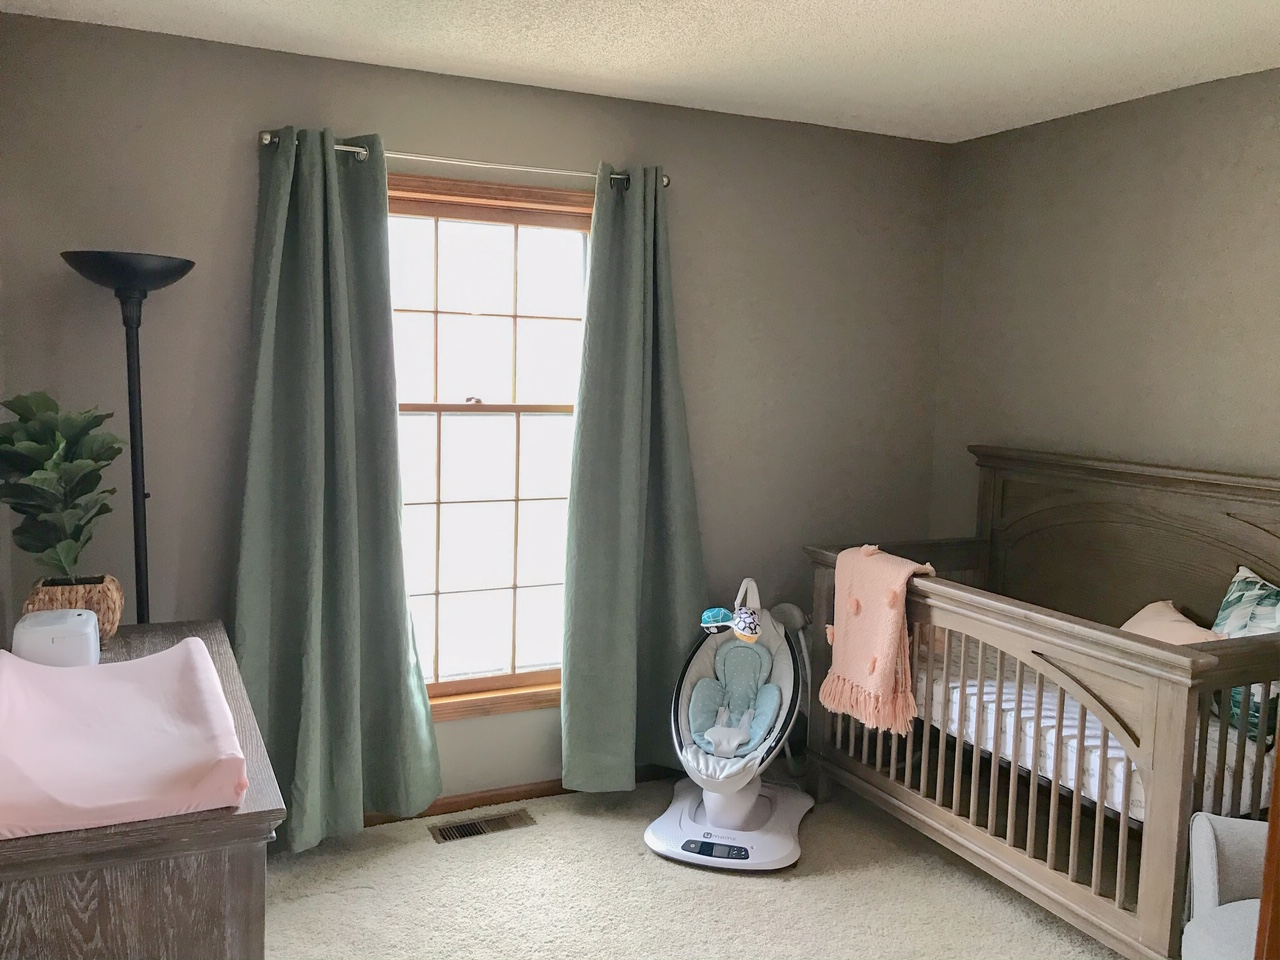 gender-neutral nursery decor